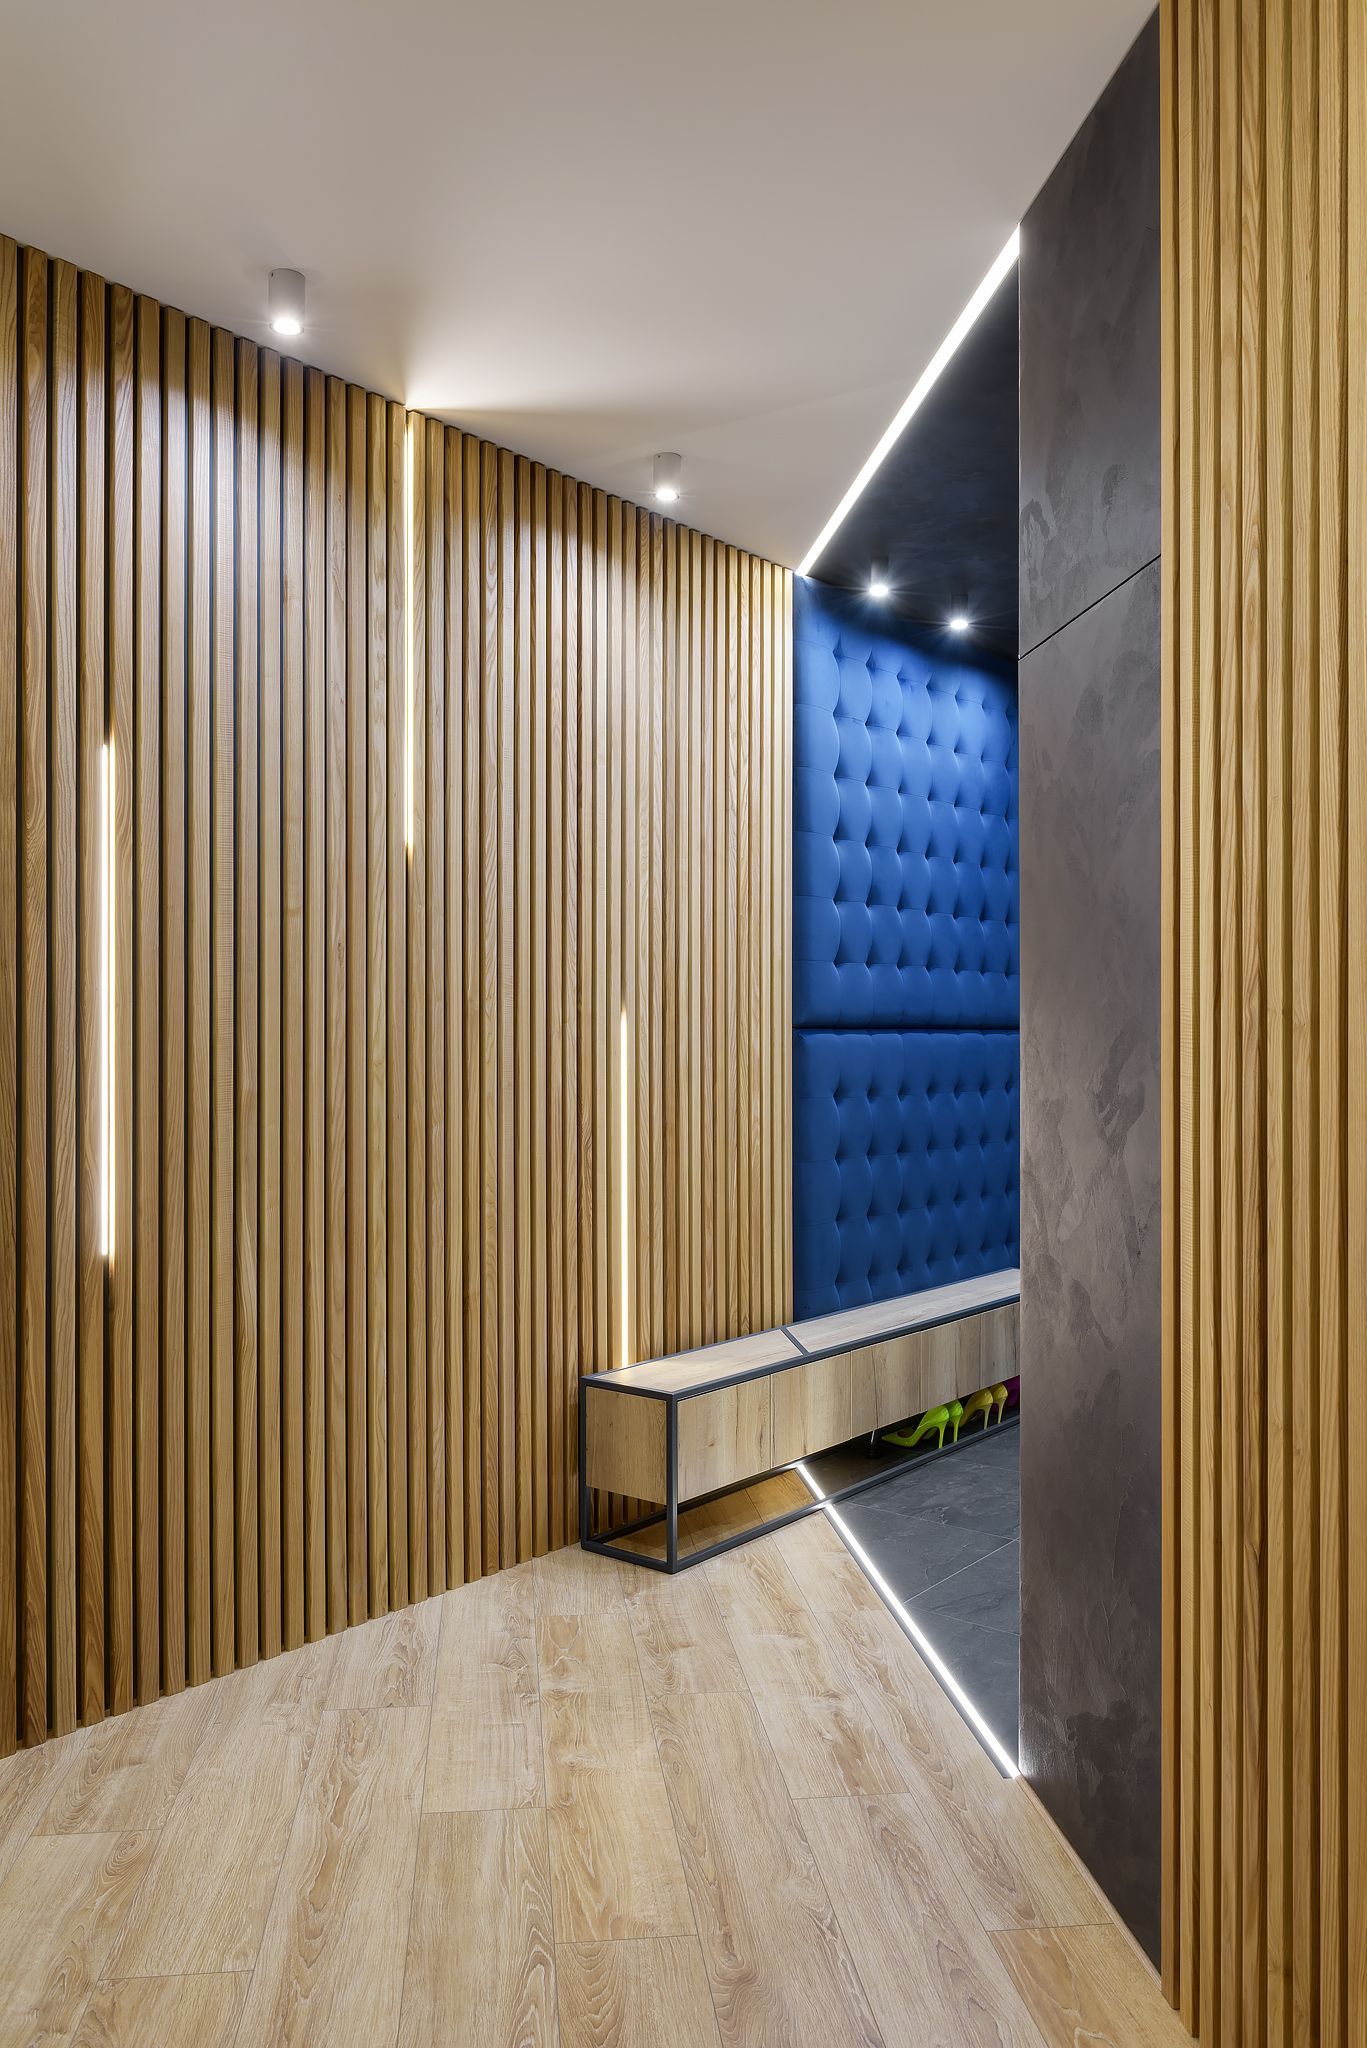 Cozy Panelling In Hallway With Wooden Panels Batten Plank